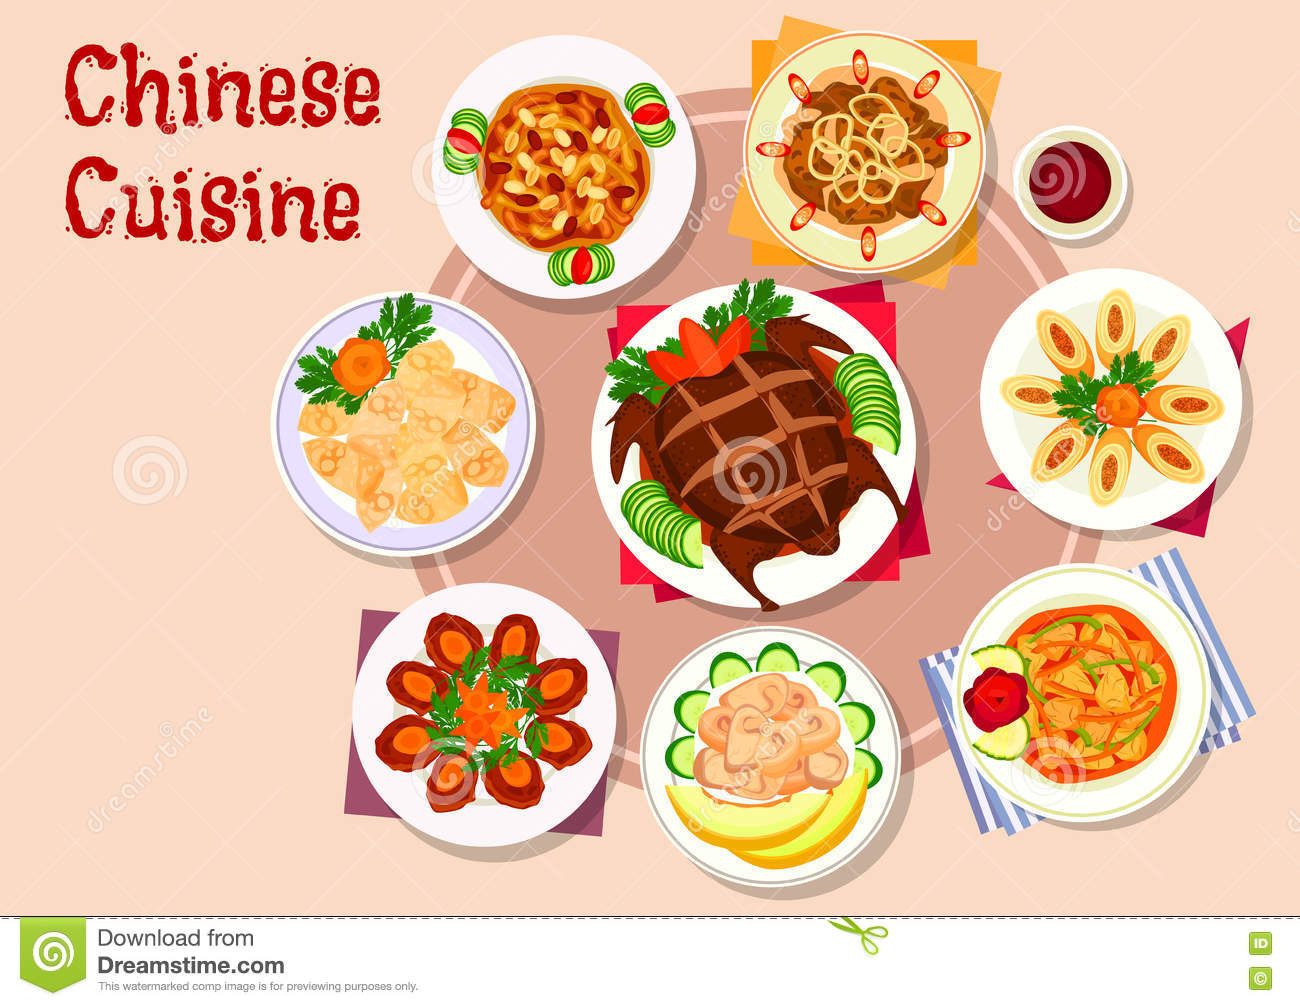 Chinese cuisine meat dishes icon for menu design stock for Asia cuisine menu